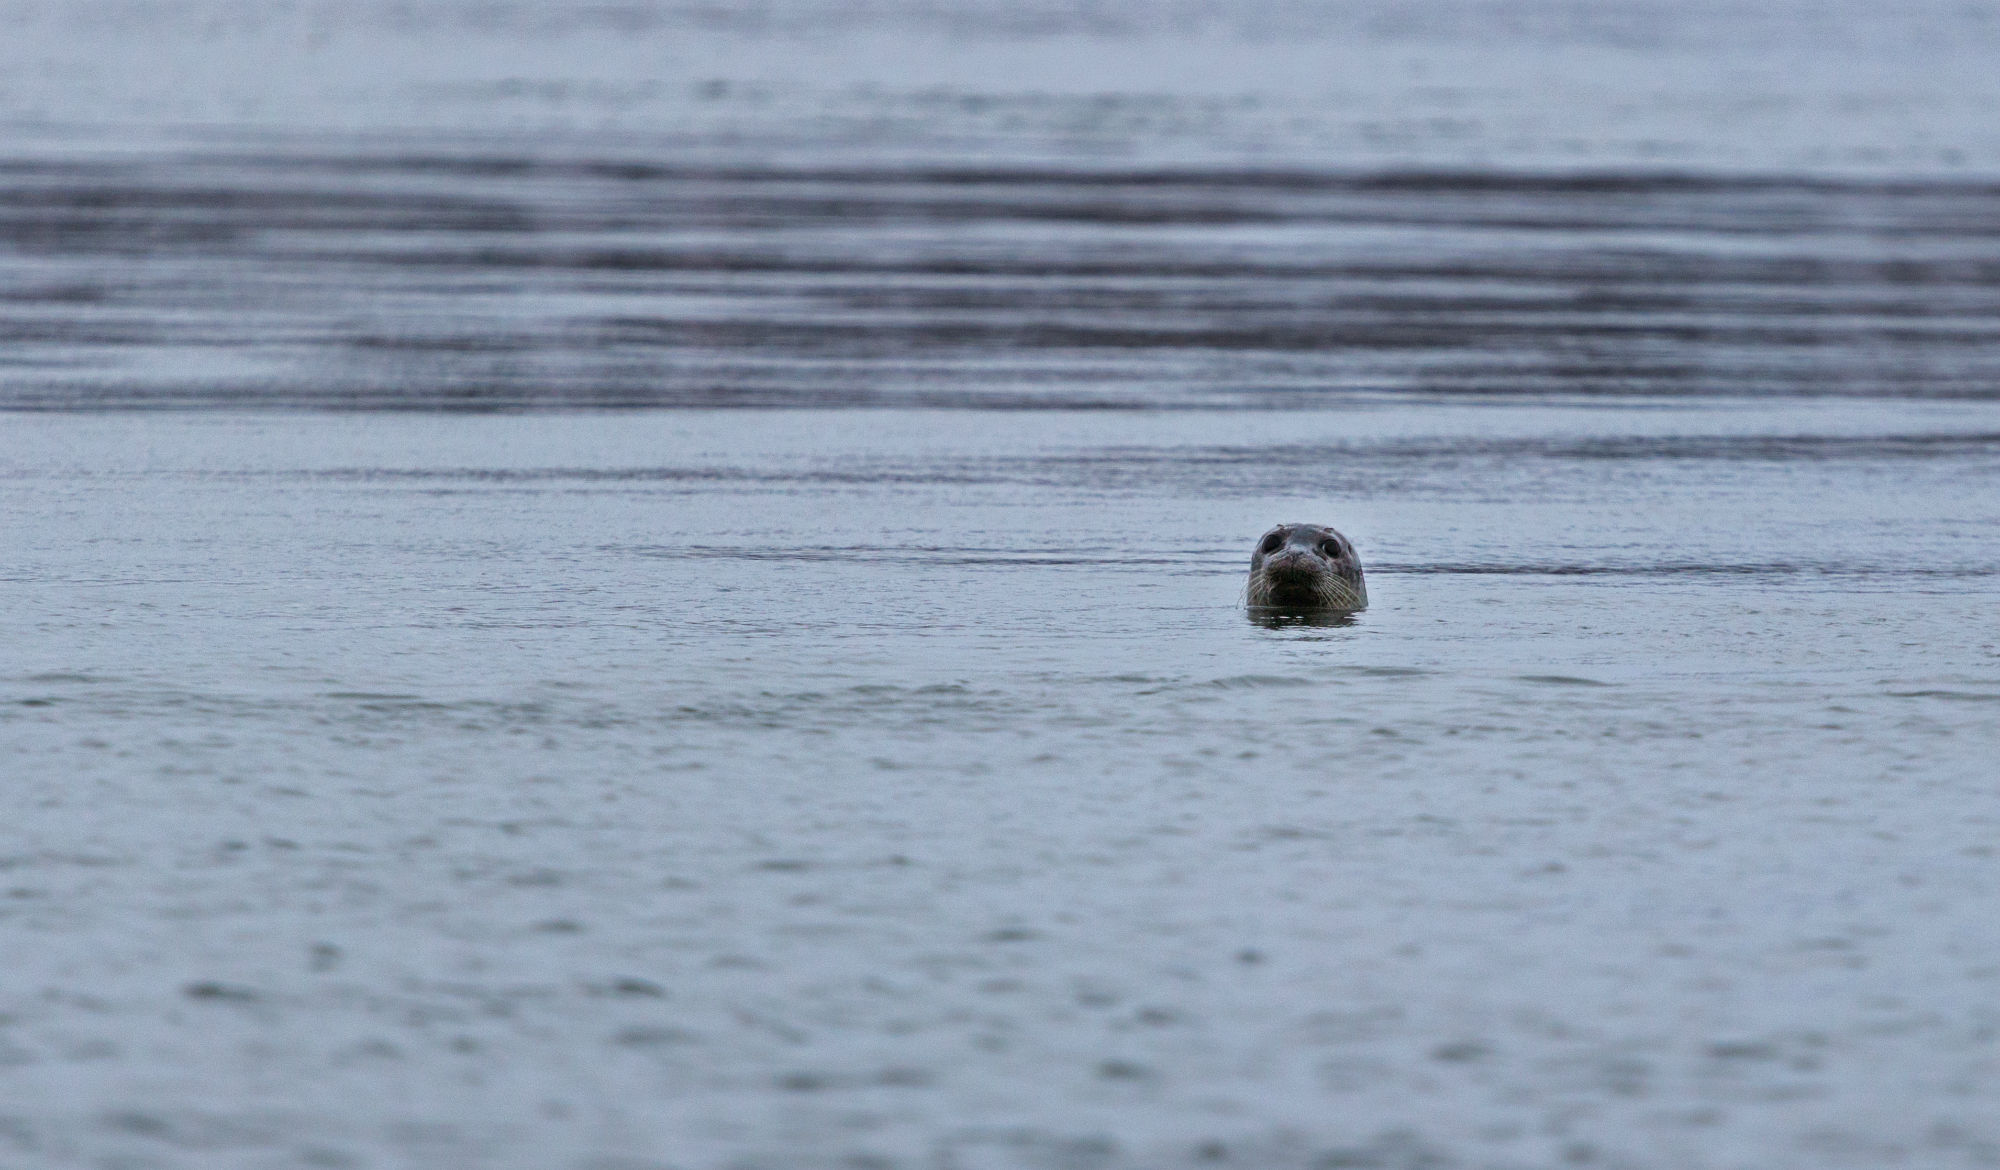 A Seal Floating in the Water of the Old Sow, Bay of Fundy